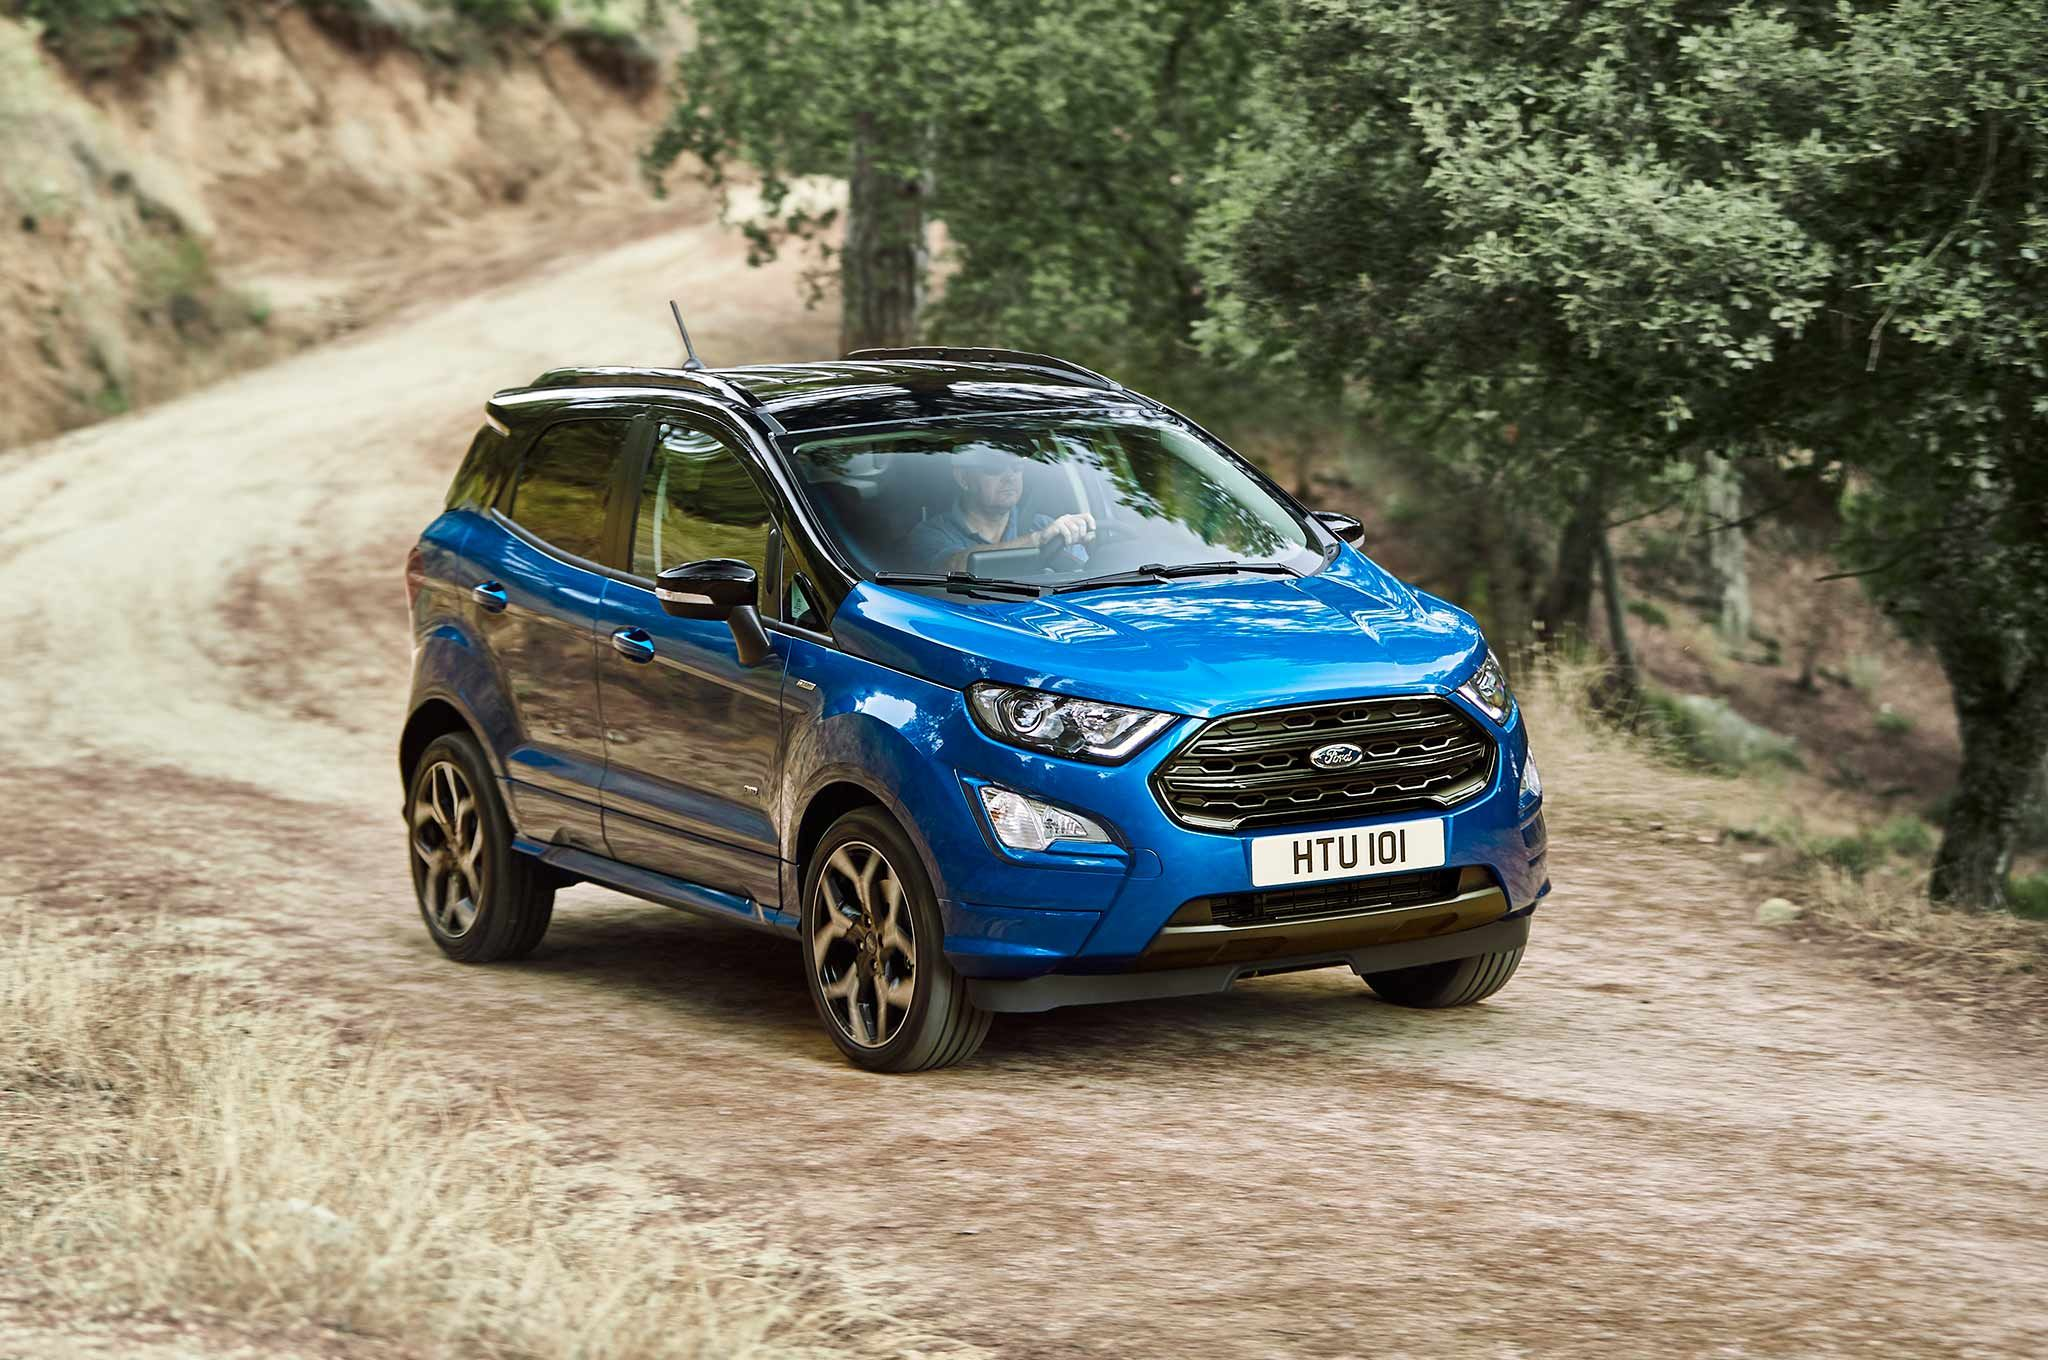 Carnews Ford Tweaking European Lineup With New Offerings Like Ecosport St Line Cars Ecosport Autonews Motorshow Ford Ecosport Ford Suv